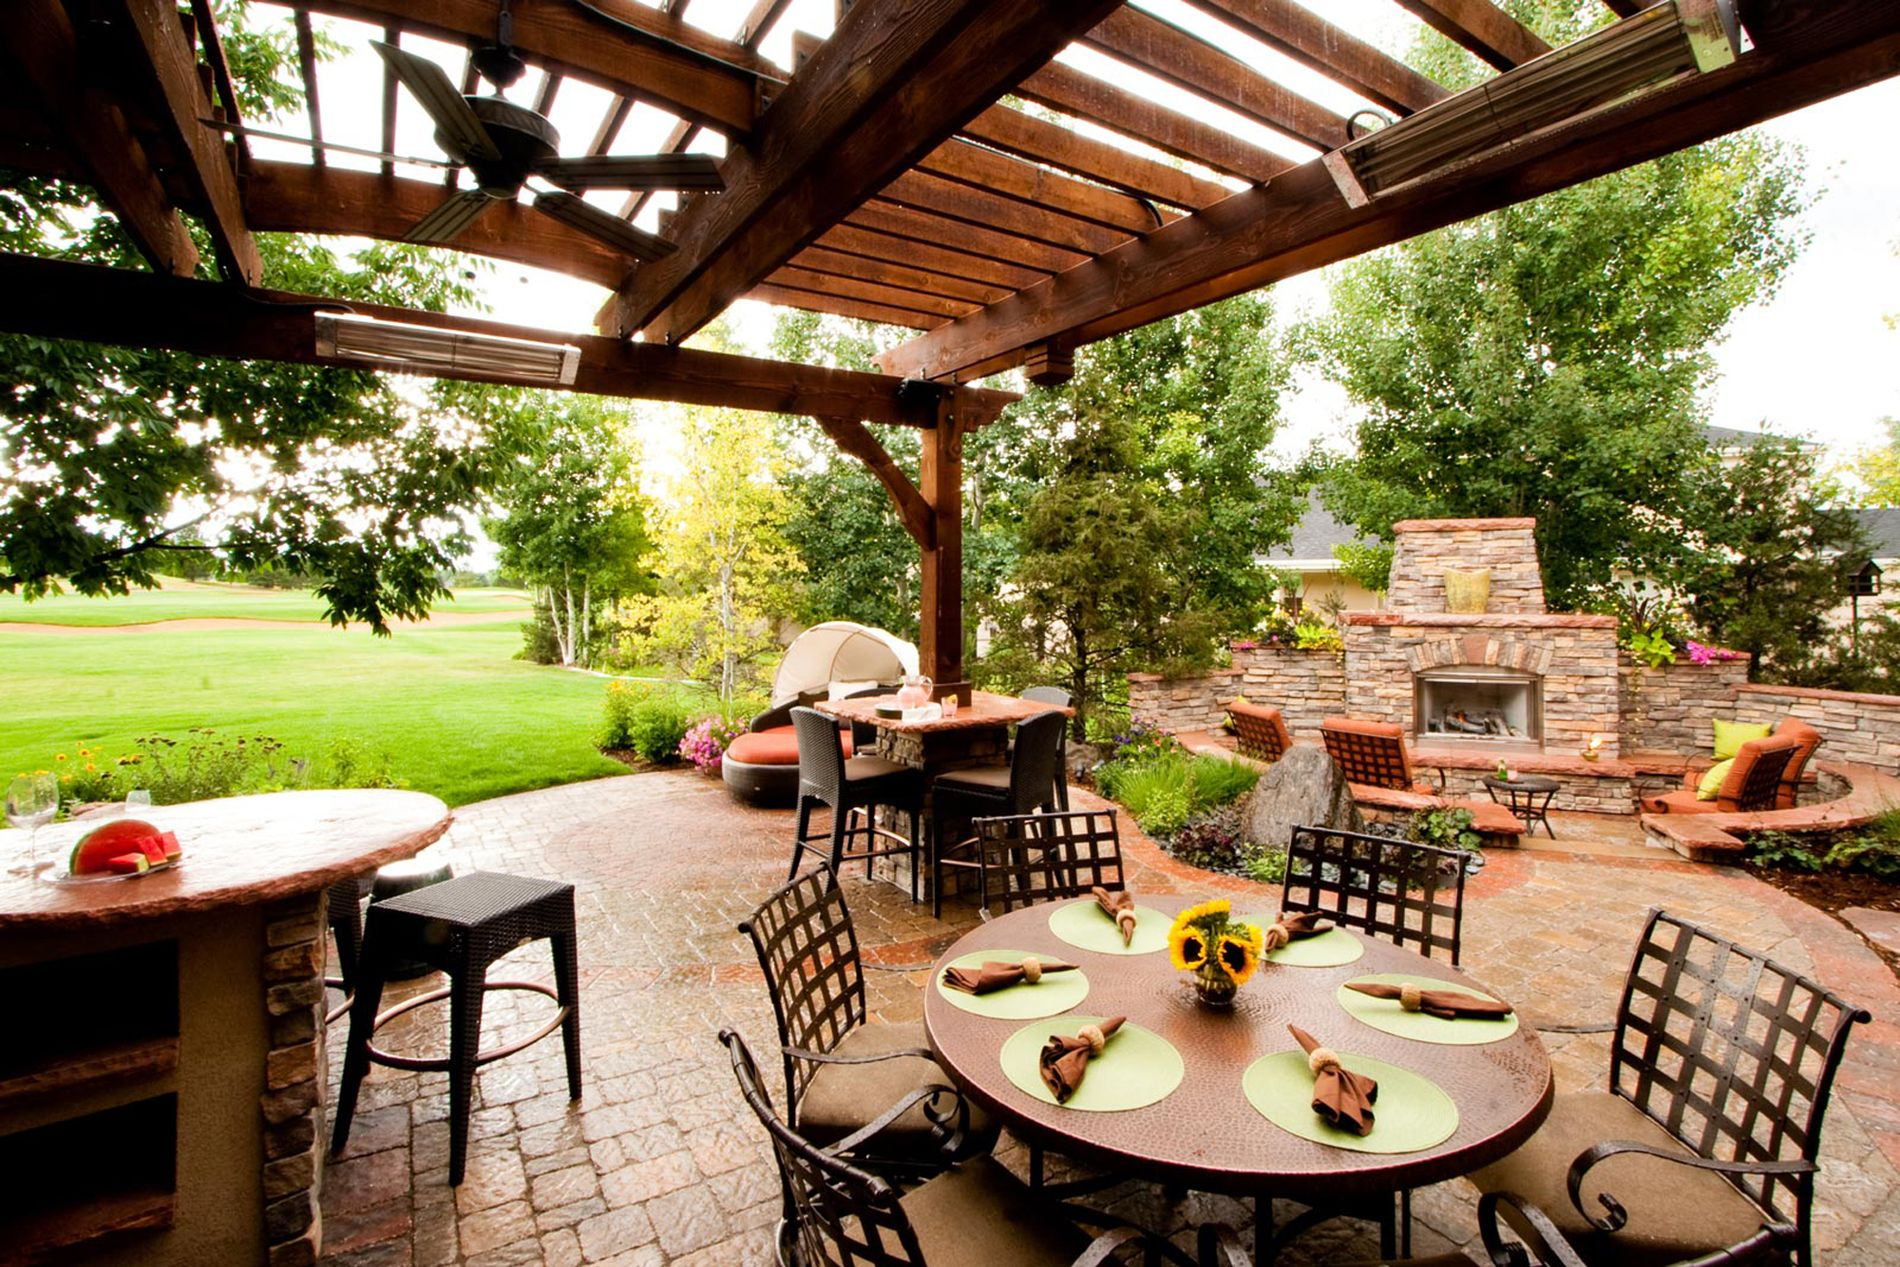 Outdoor Fireplace With Paver Patio and Shade Structure